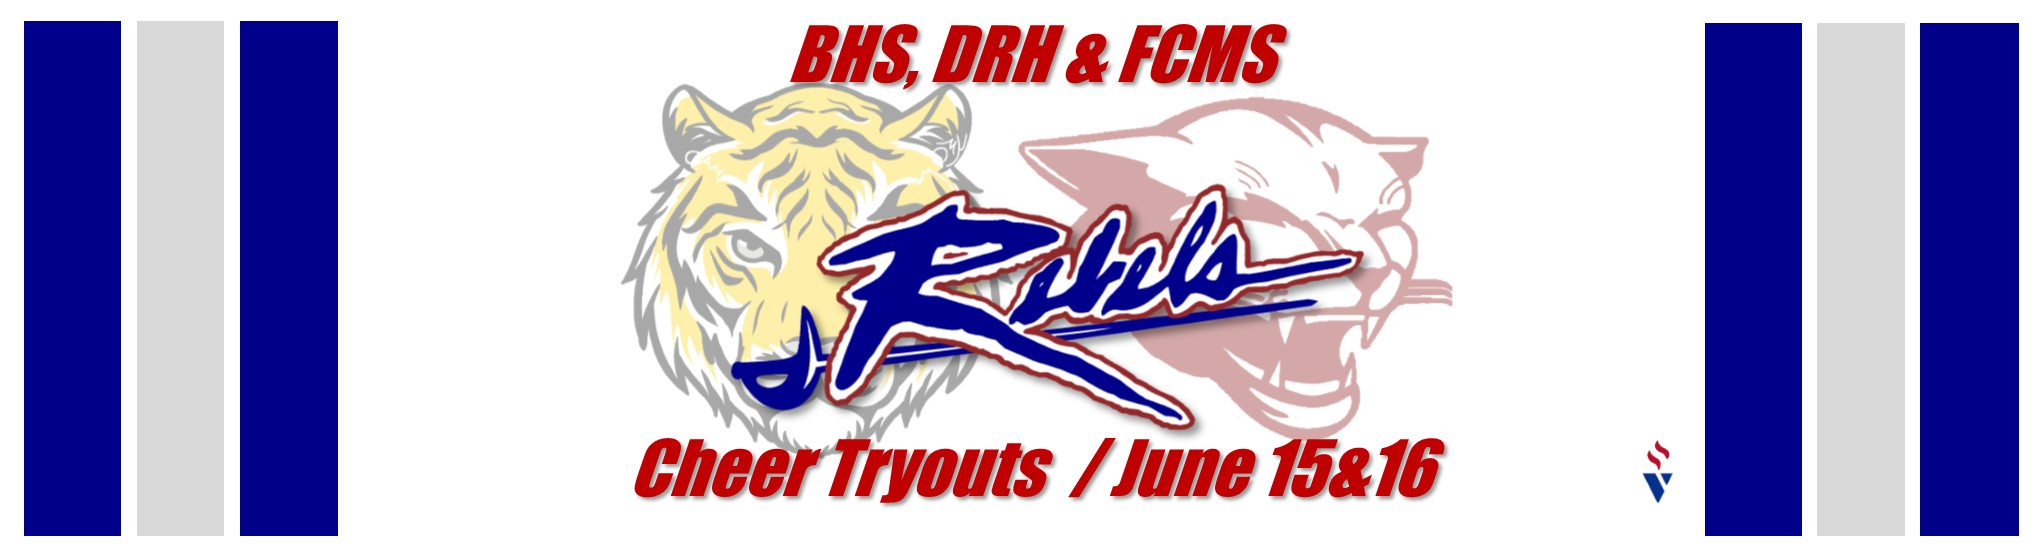 REMINDER:  Cheer tryouts begin on Monday